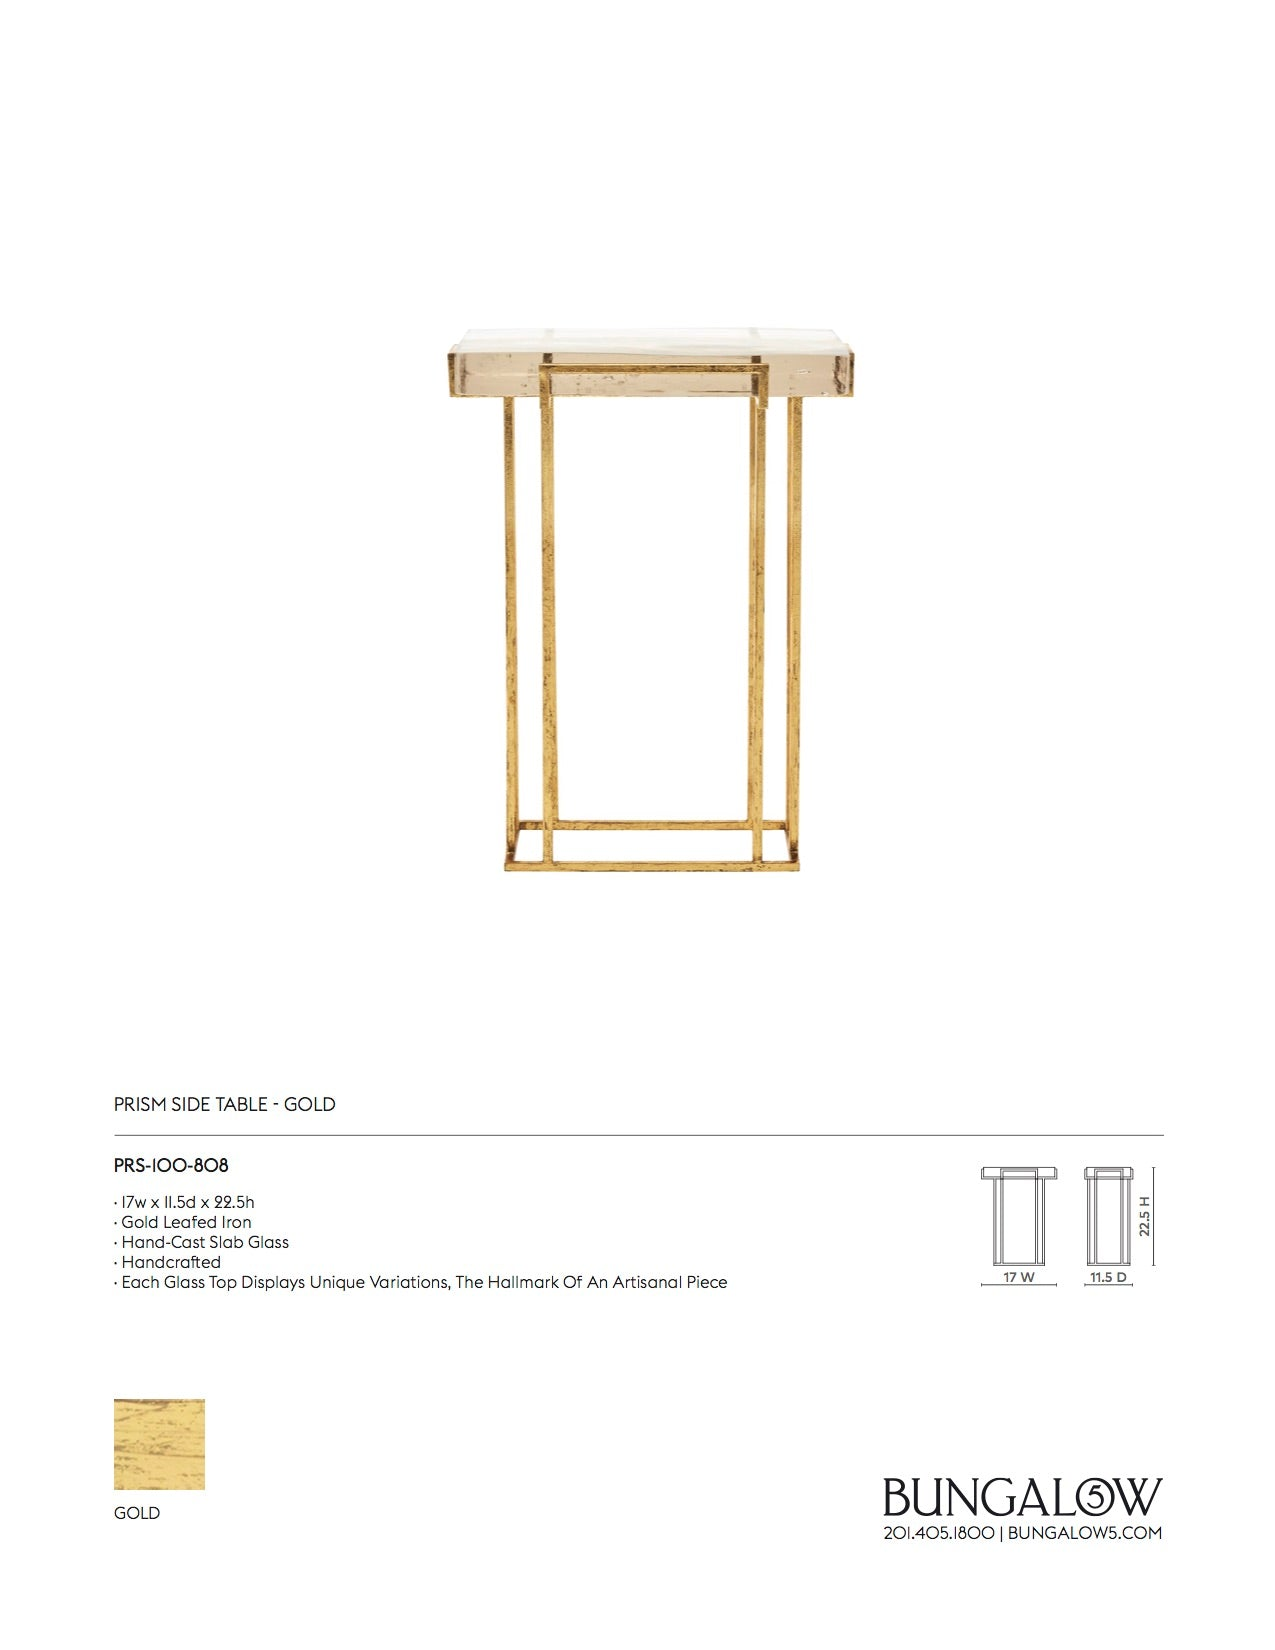 Bungalow 5 Prism Side Table Gold Tearsheet